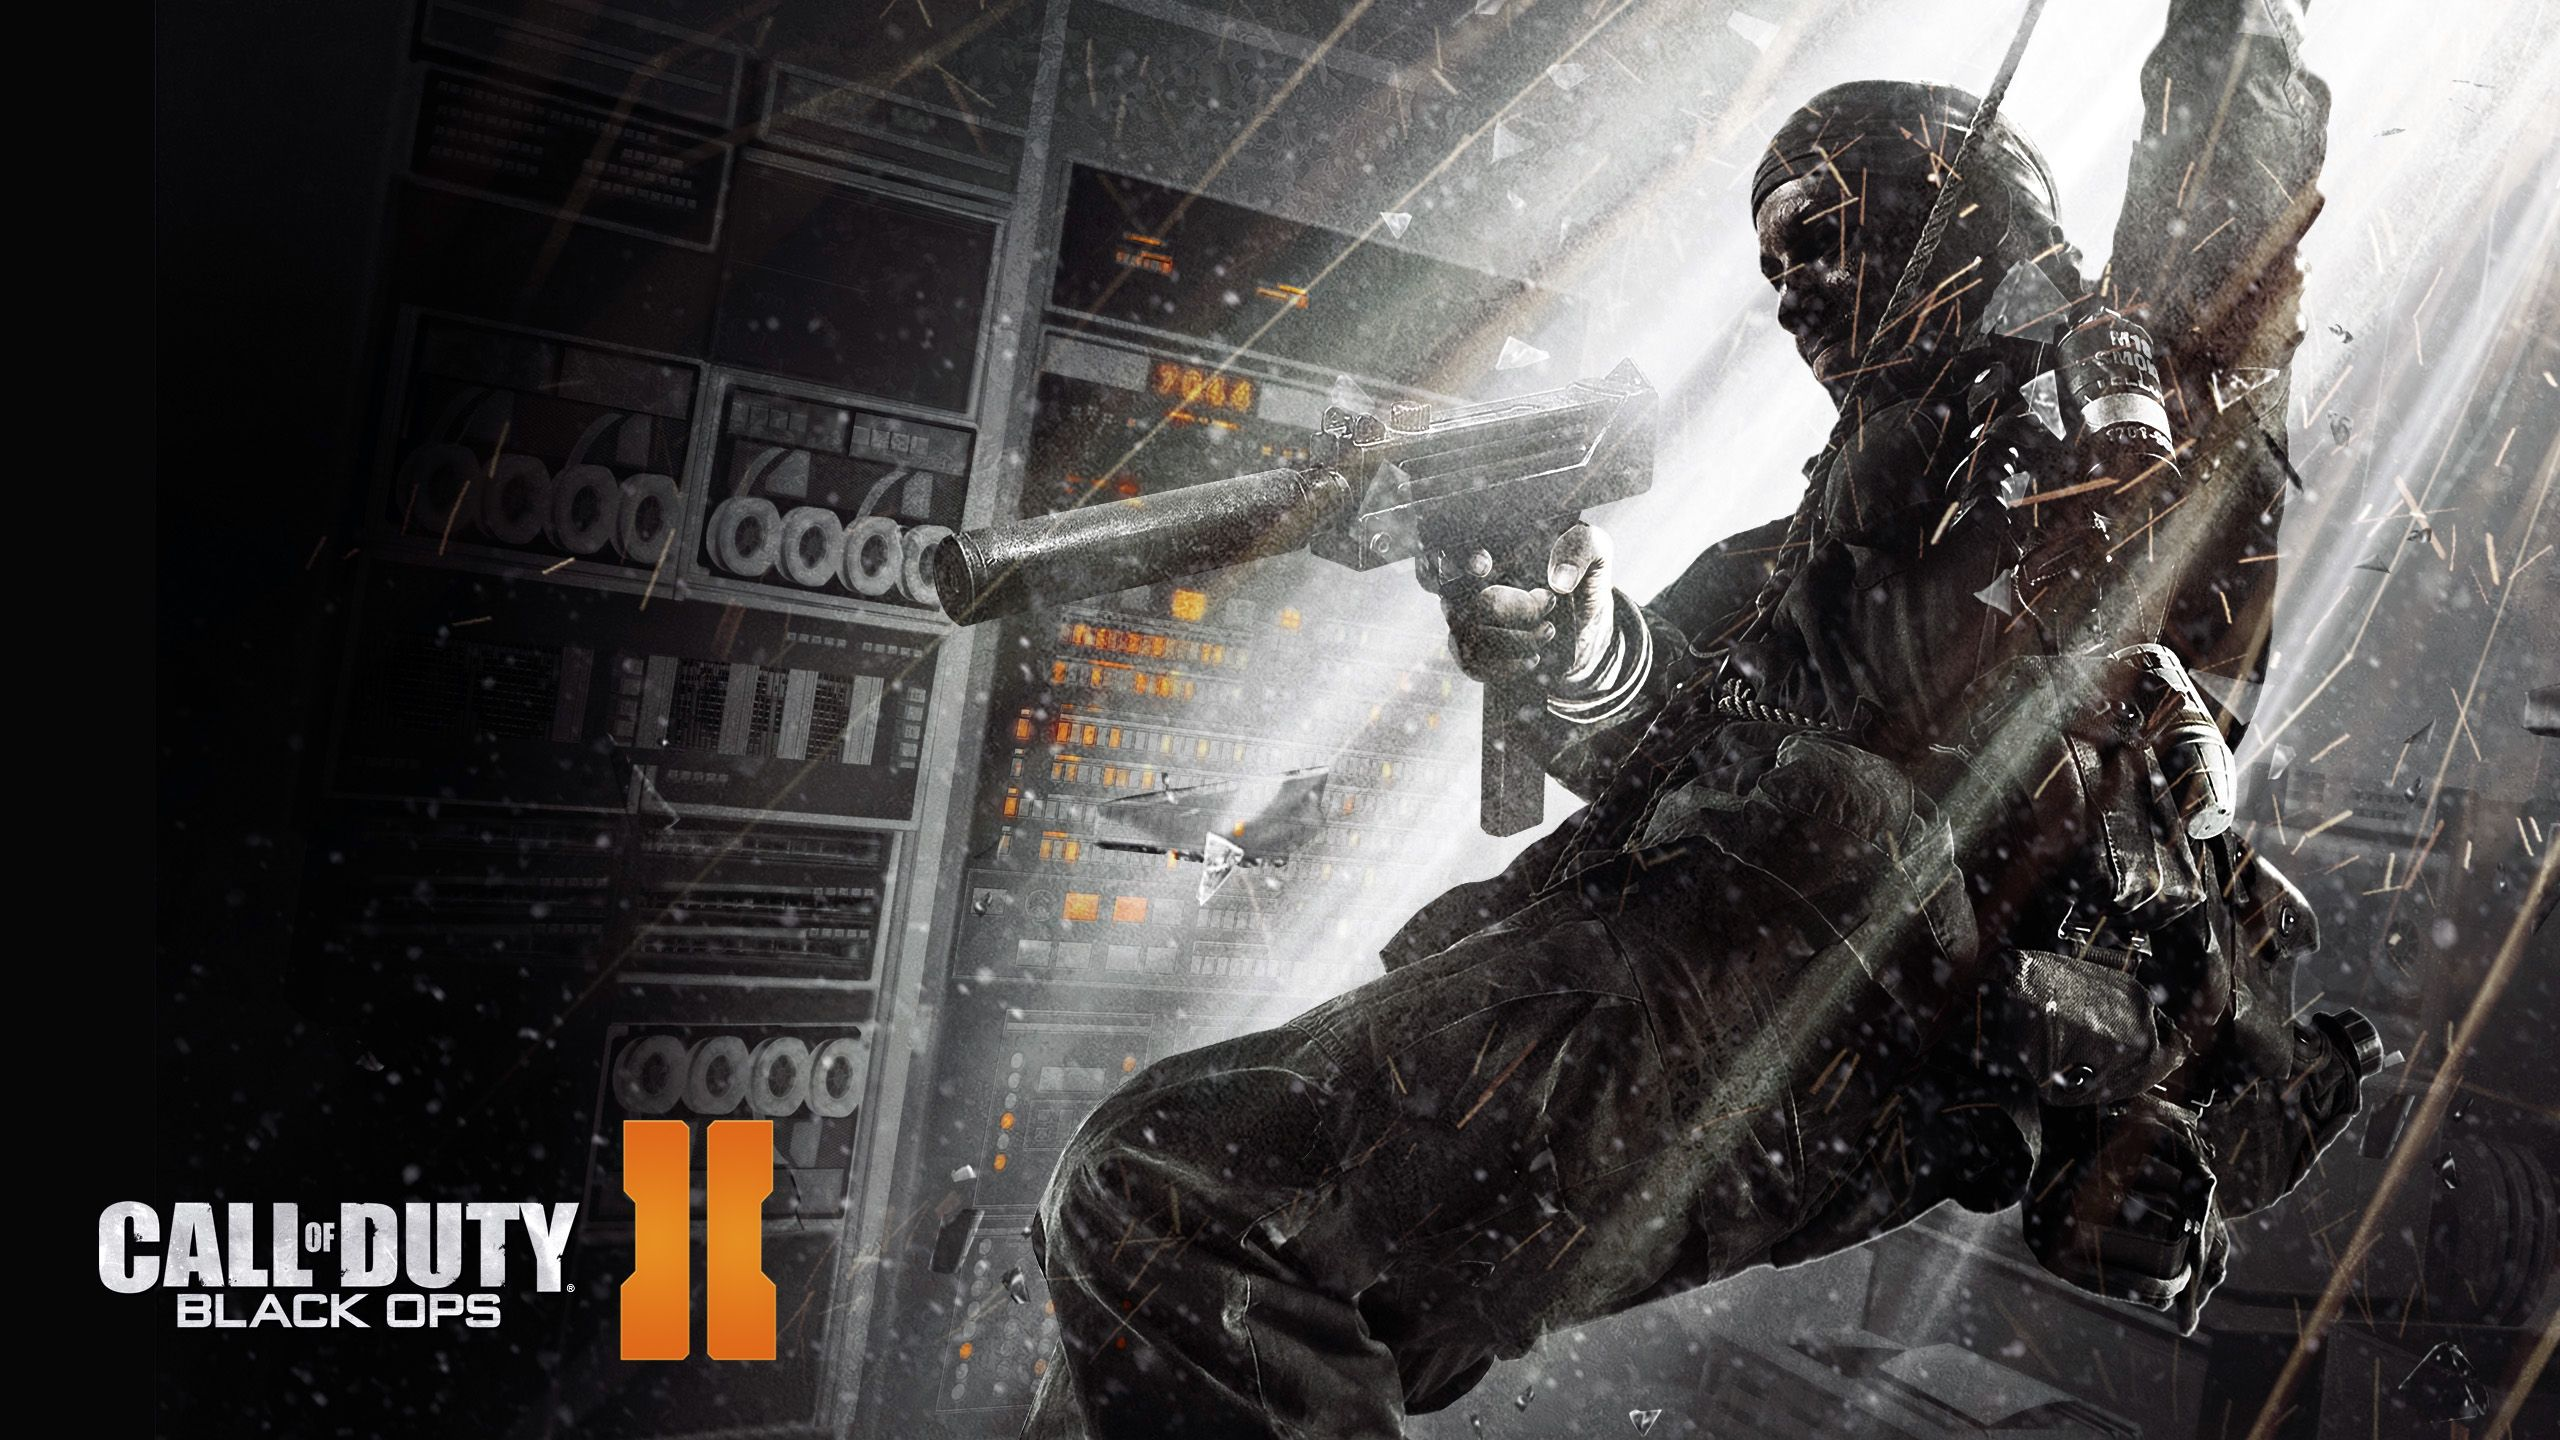 Call Of Duty Black Ops Wallpaper 1920x1080 Wallpapers Of Call Of